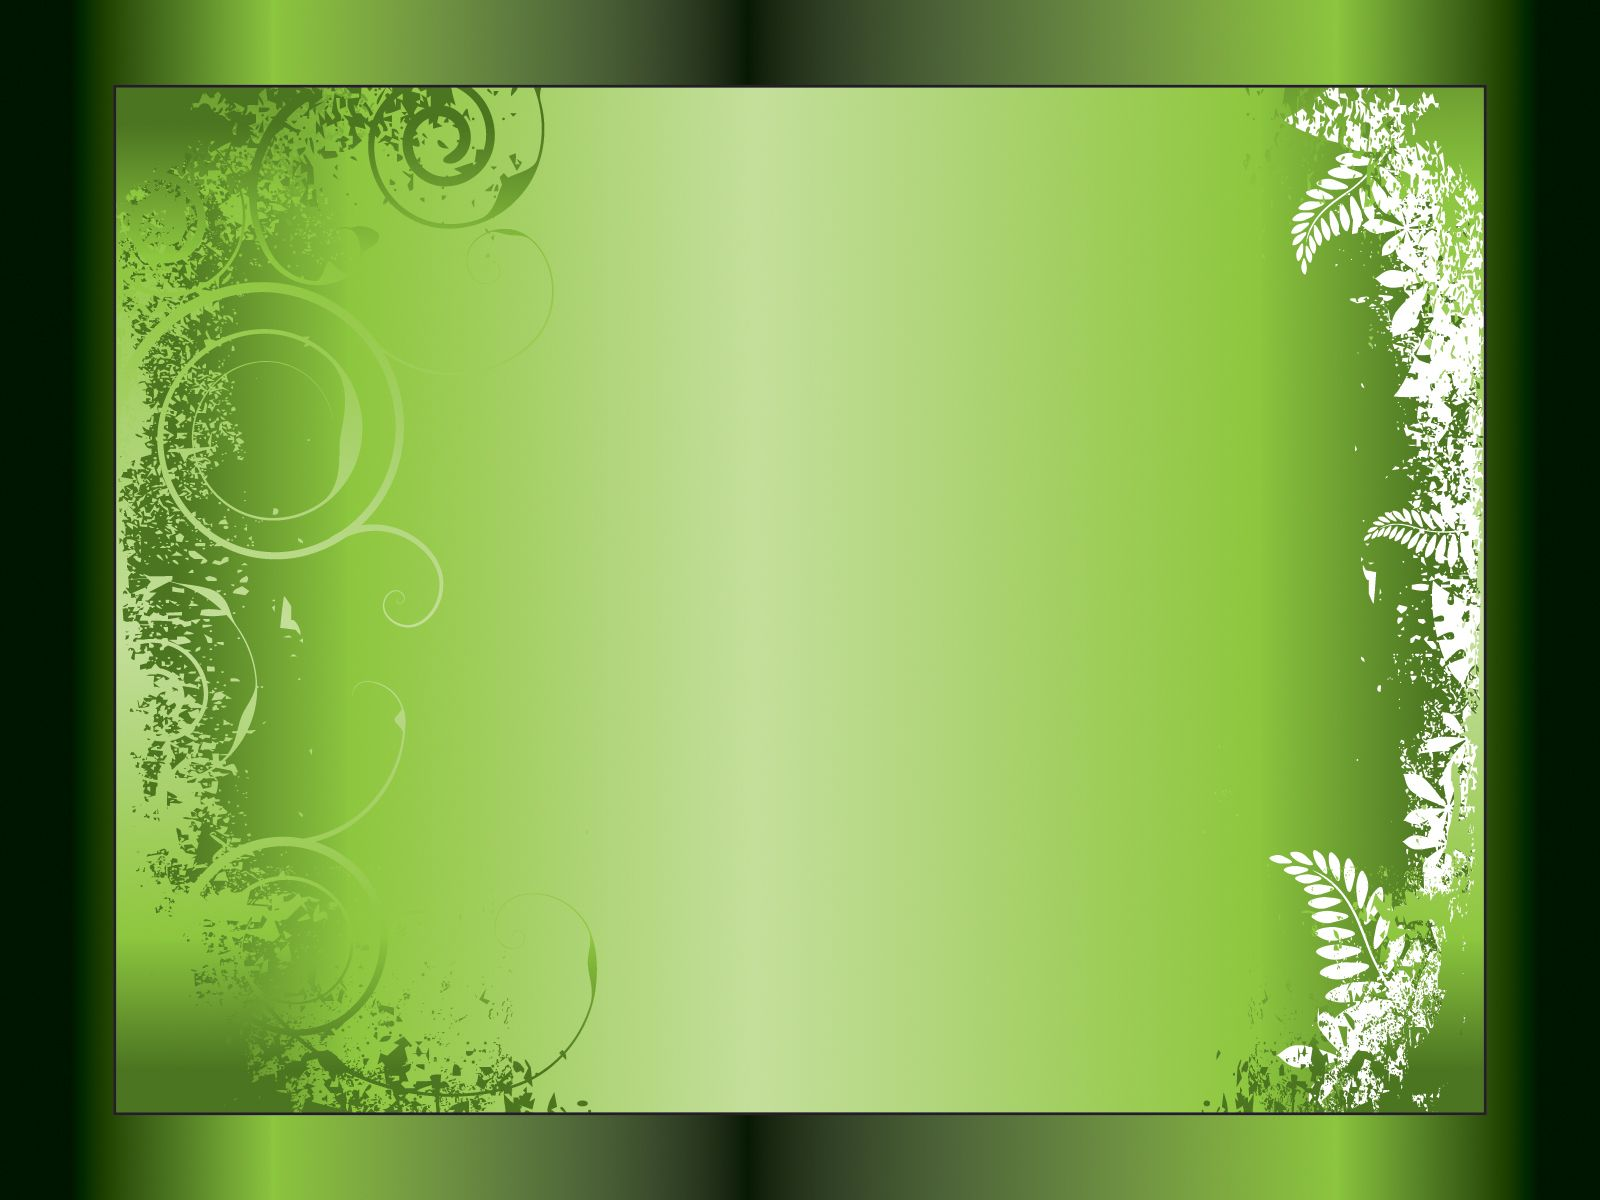 Lime green background green ivy swirl powerpoint templates clip description this green ivy swirl powerpoint template is a free abstract design light effects and it has a green background toneelgroepblik Images